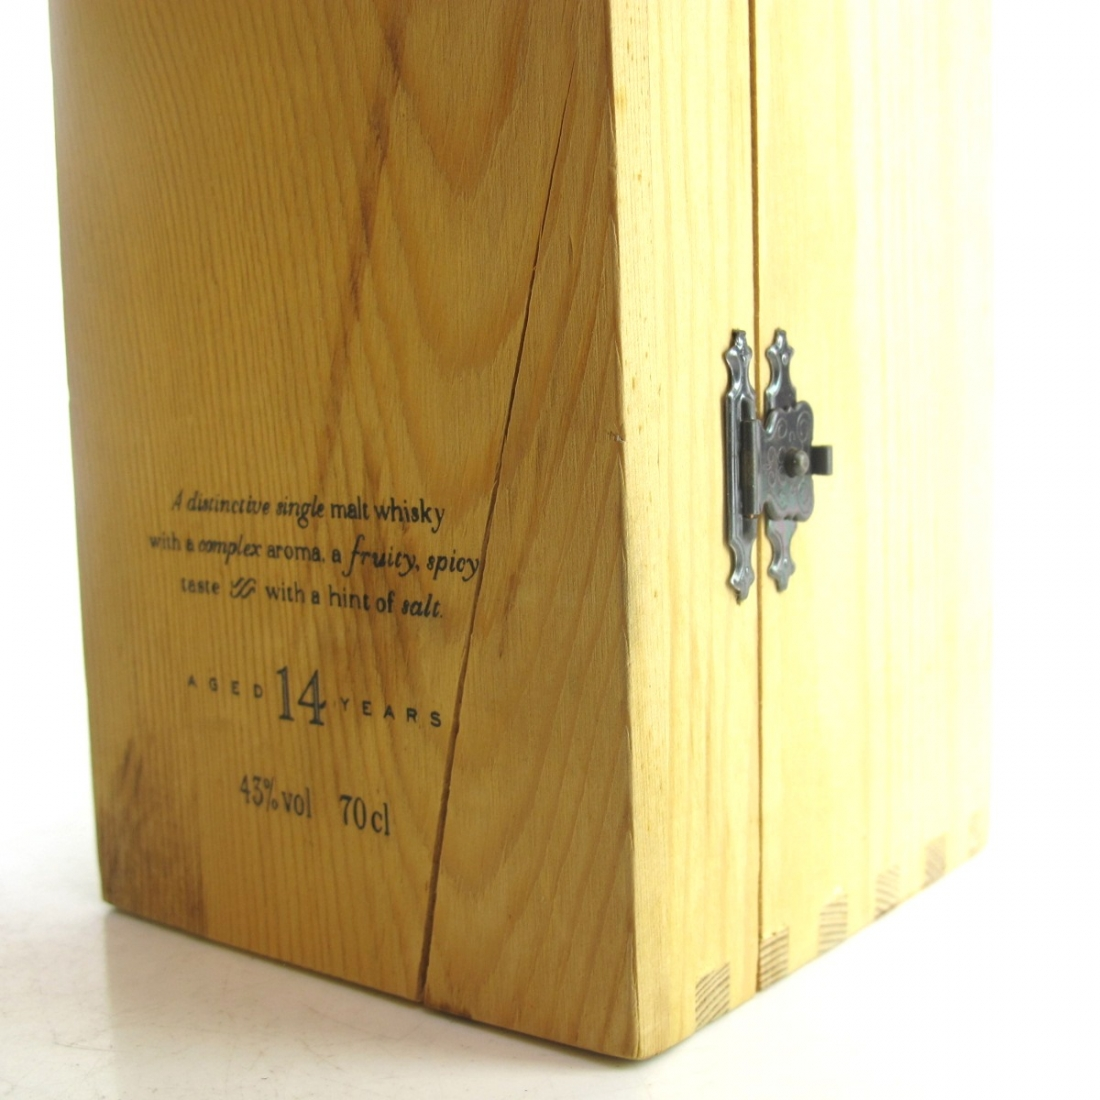 Inchgower 14 Year Old Flora and Fauna / Wooden Box and White Cap